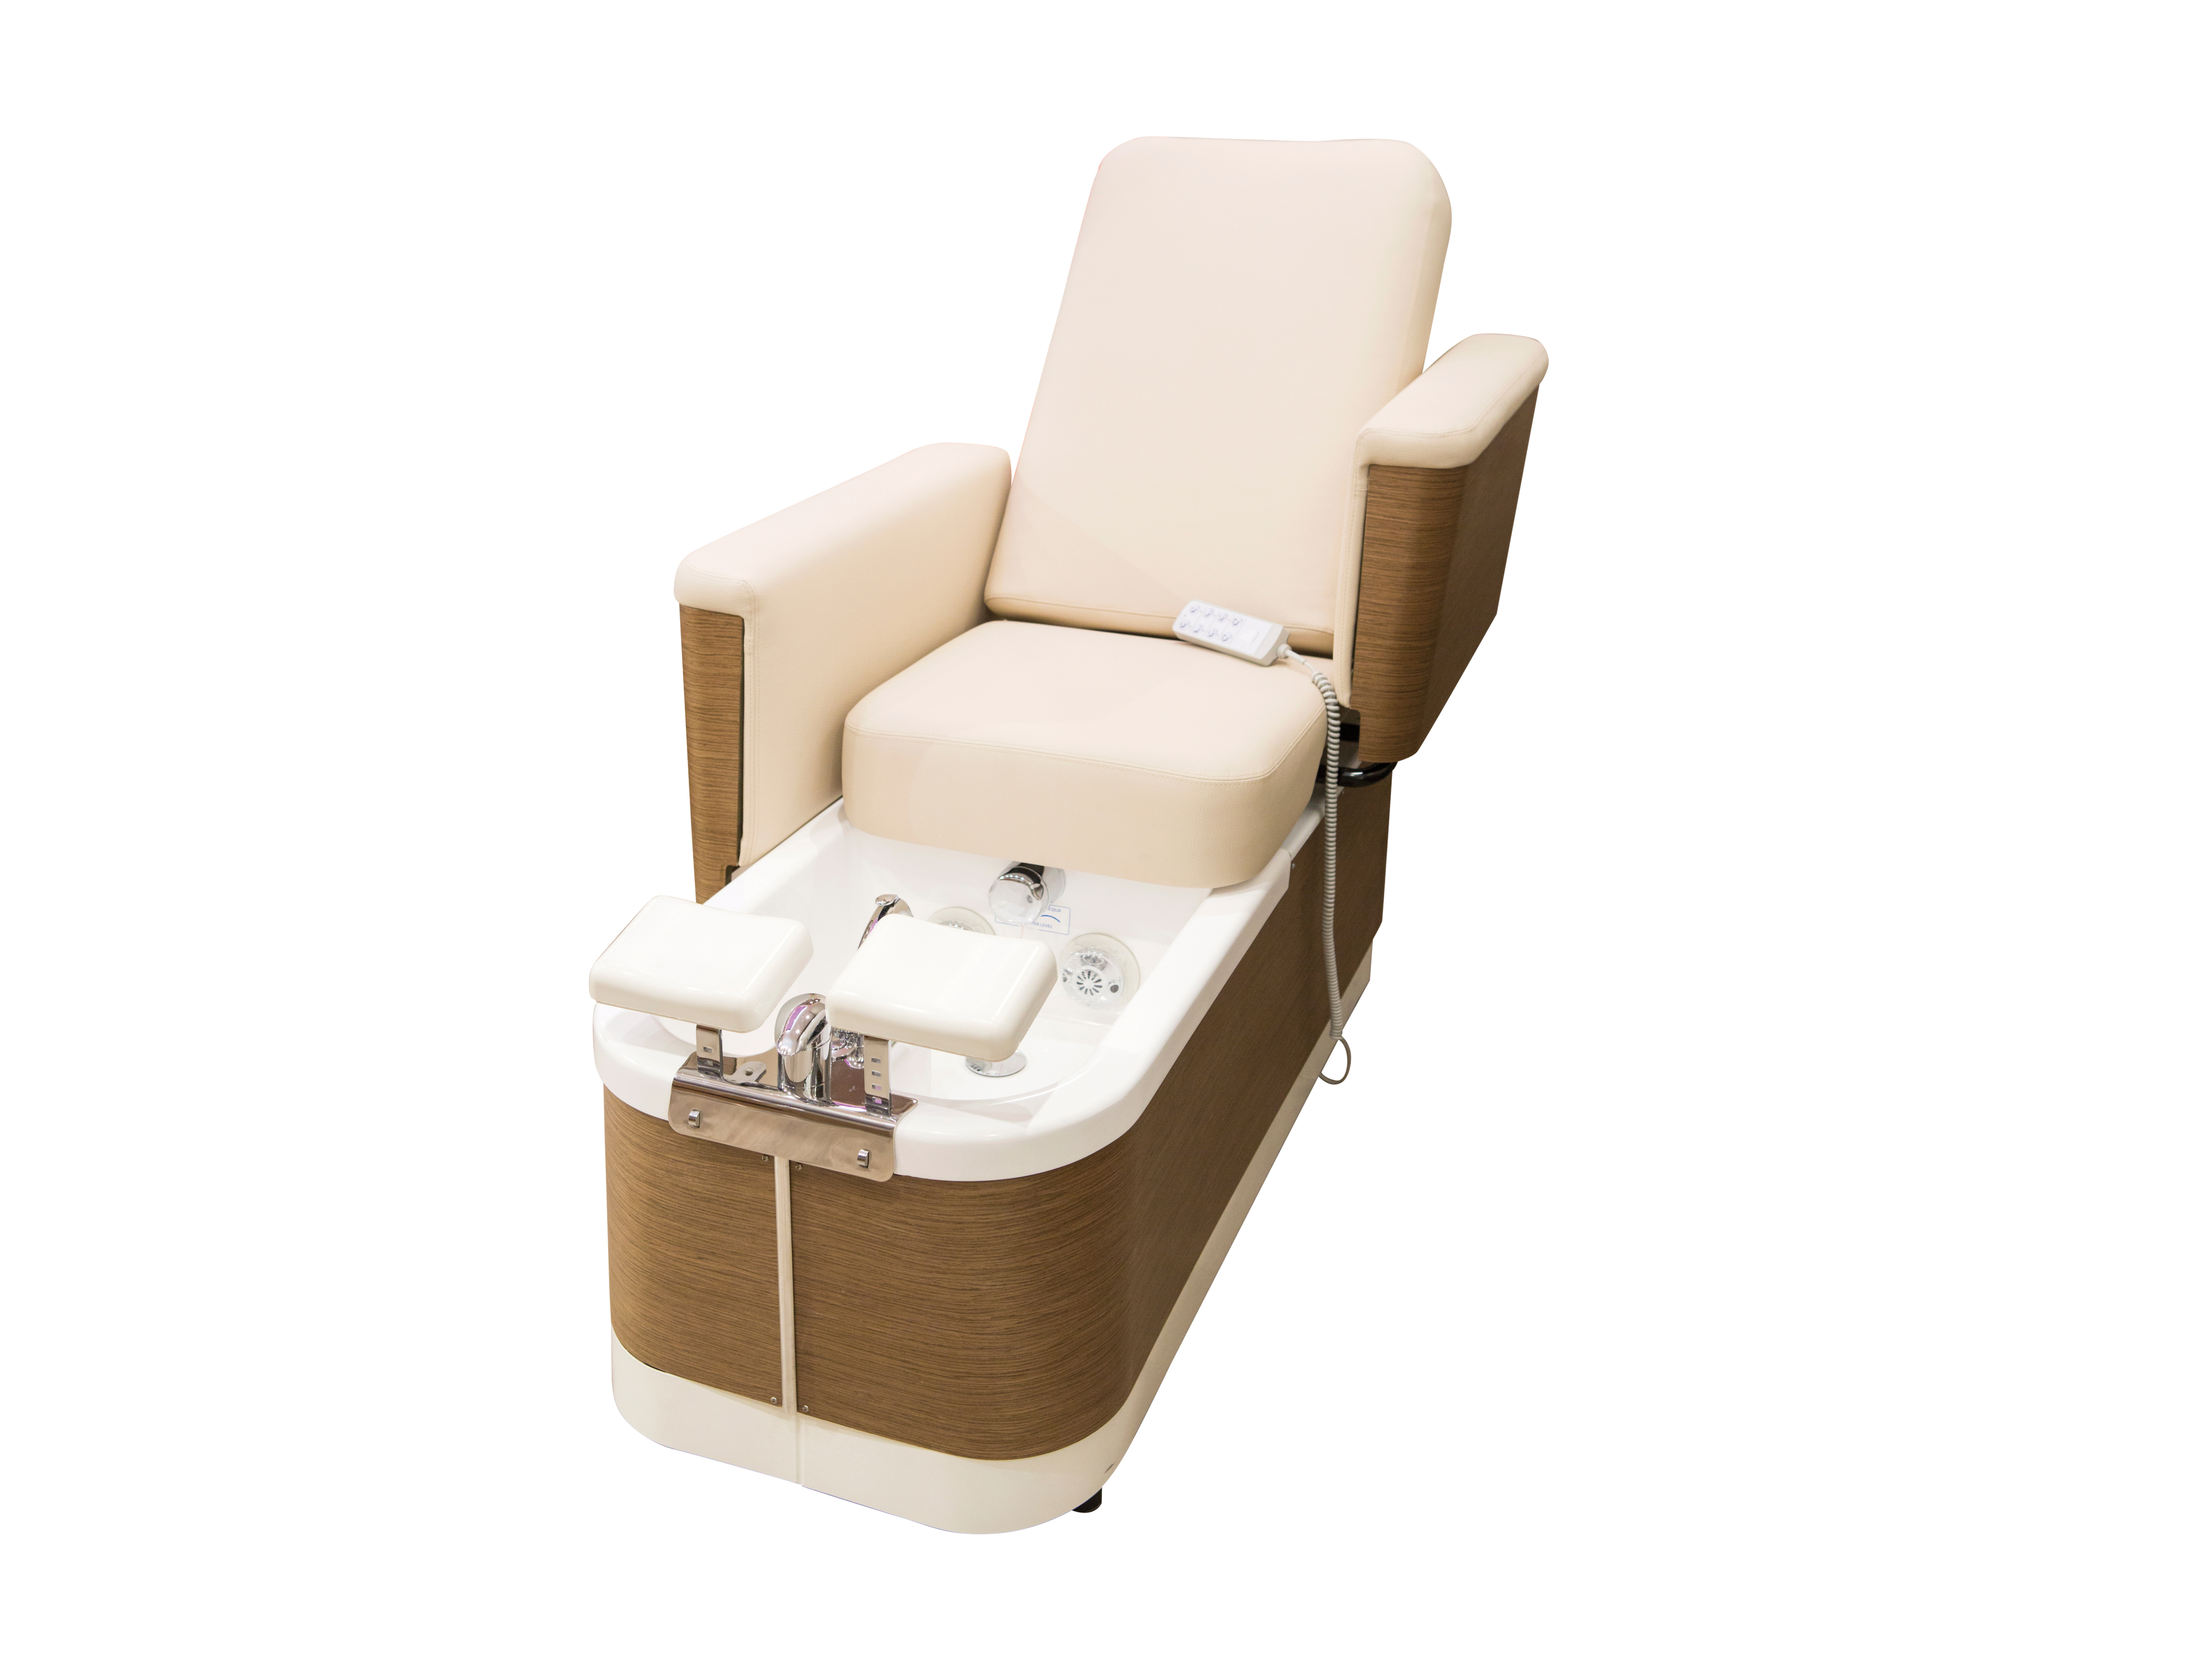 Massage polyurethane pedicure chair ALL IN ONE By Nilo design